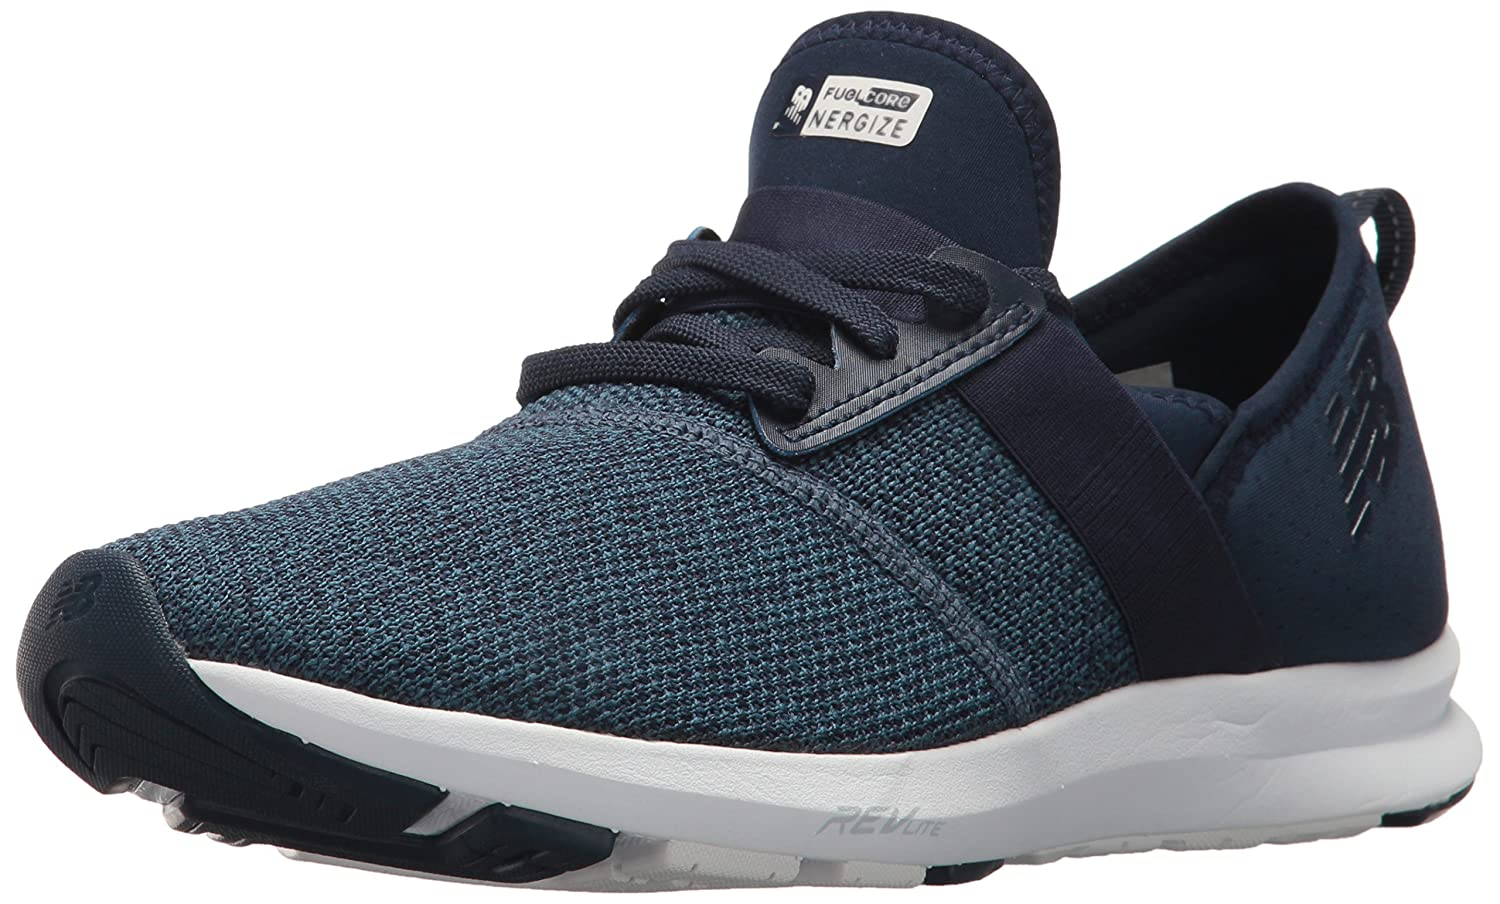 New Balance Women's FuelCore Nergize V1 Fuel Core Cross Trainer B005ATOB5Q 7.5 D US|Navy